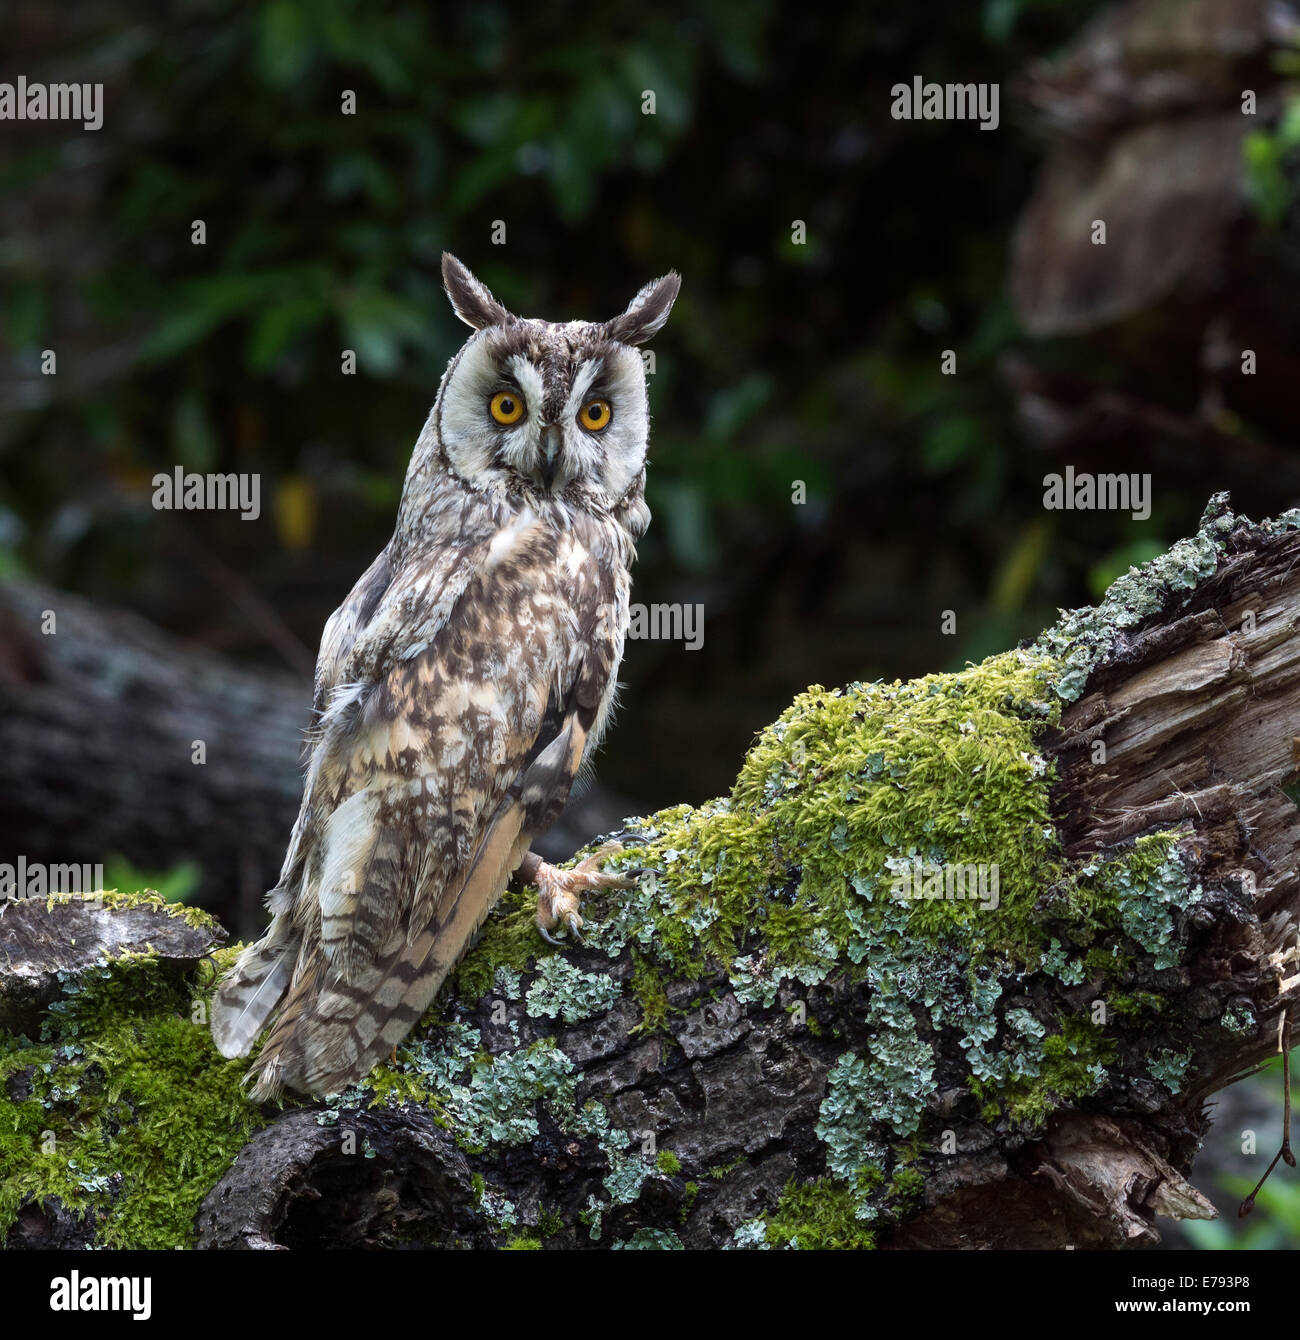 Long Eared Owl (Asio otus, previously Strix otus). Not a wild owl - Stock Image